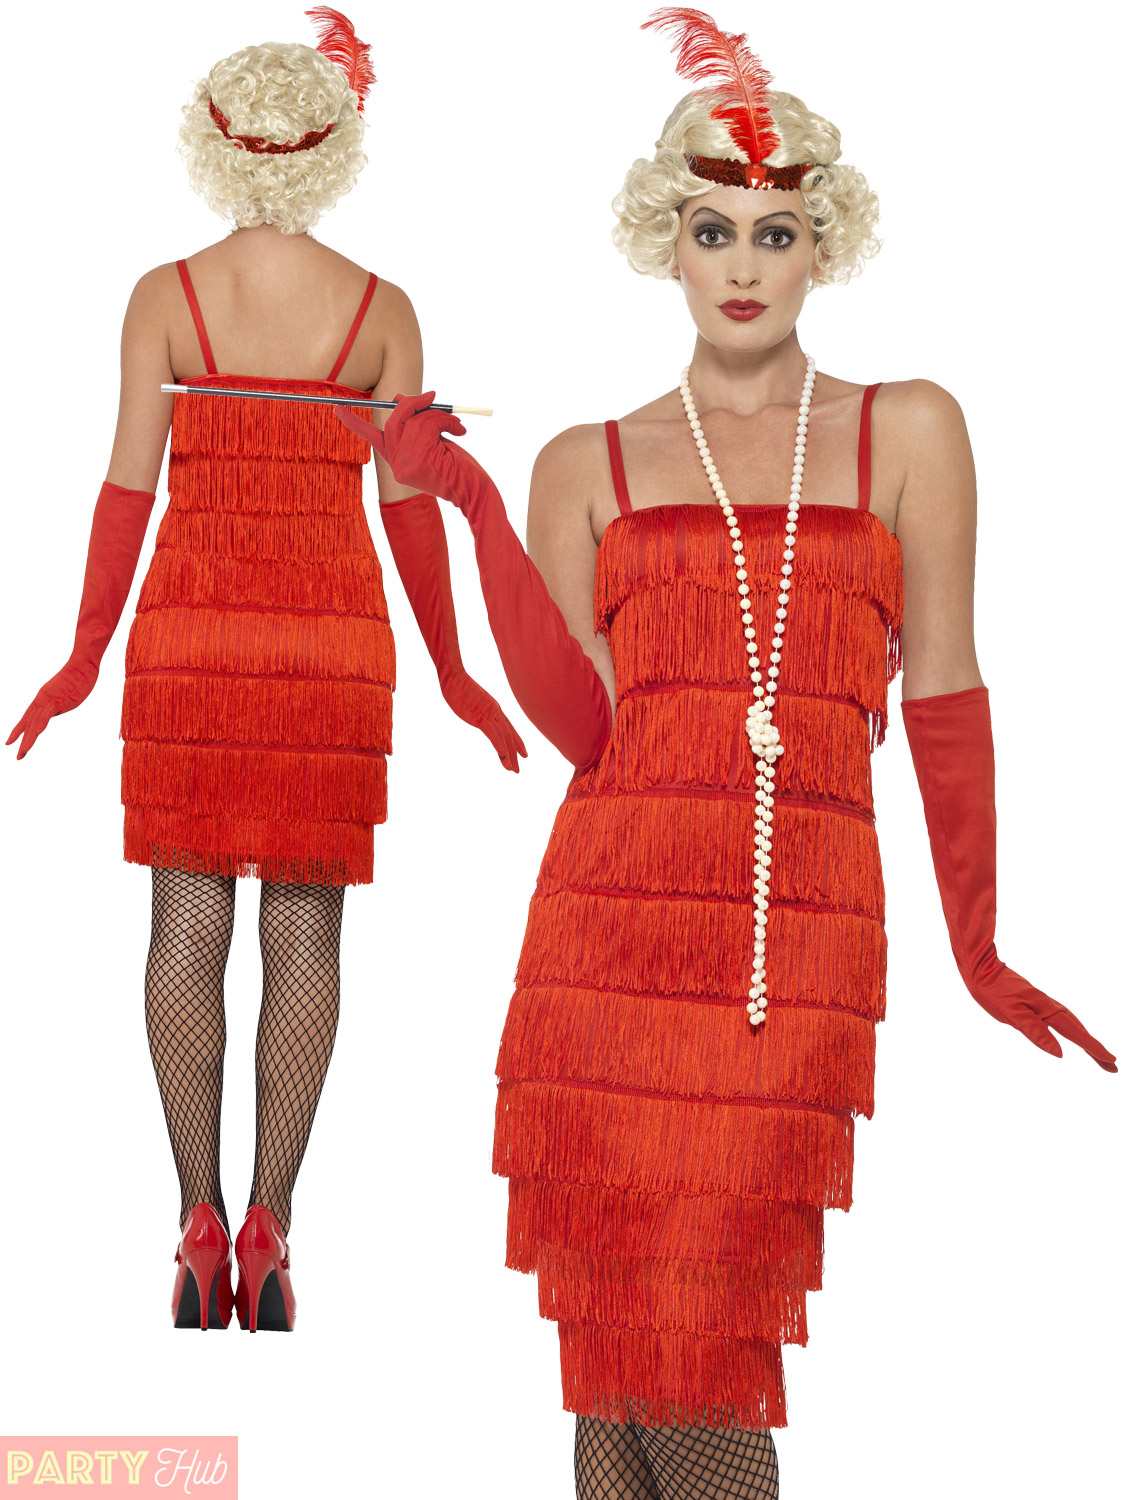 1920s Fashion Meant Flappers, Jazz and Attitude